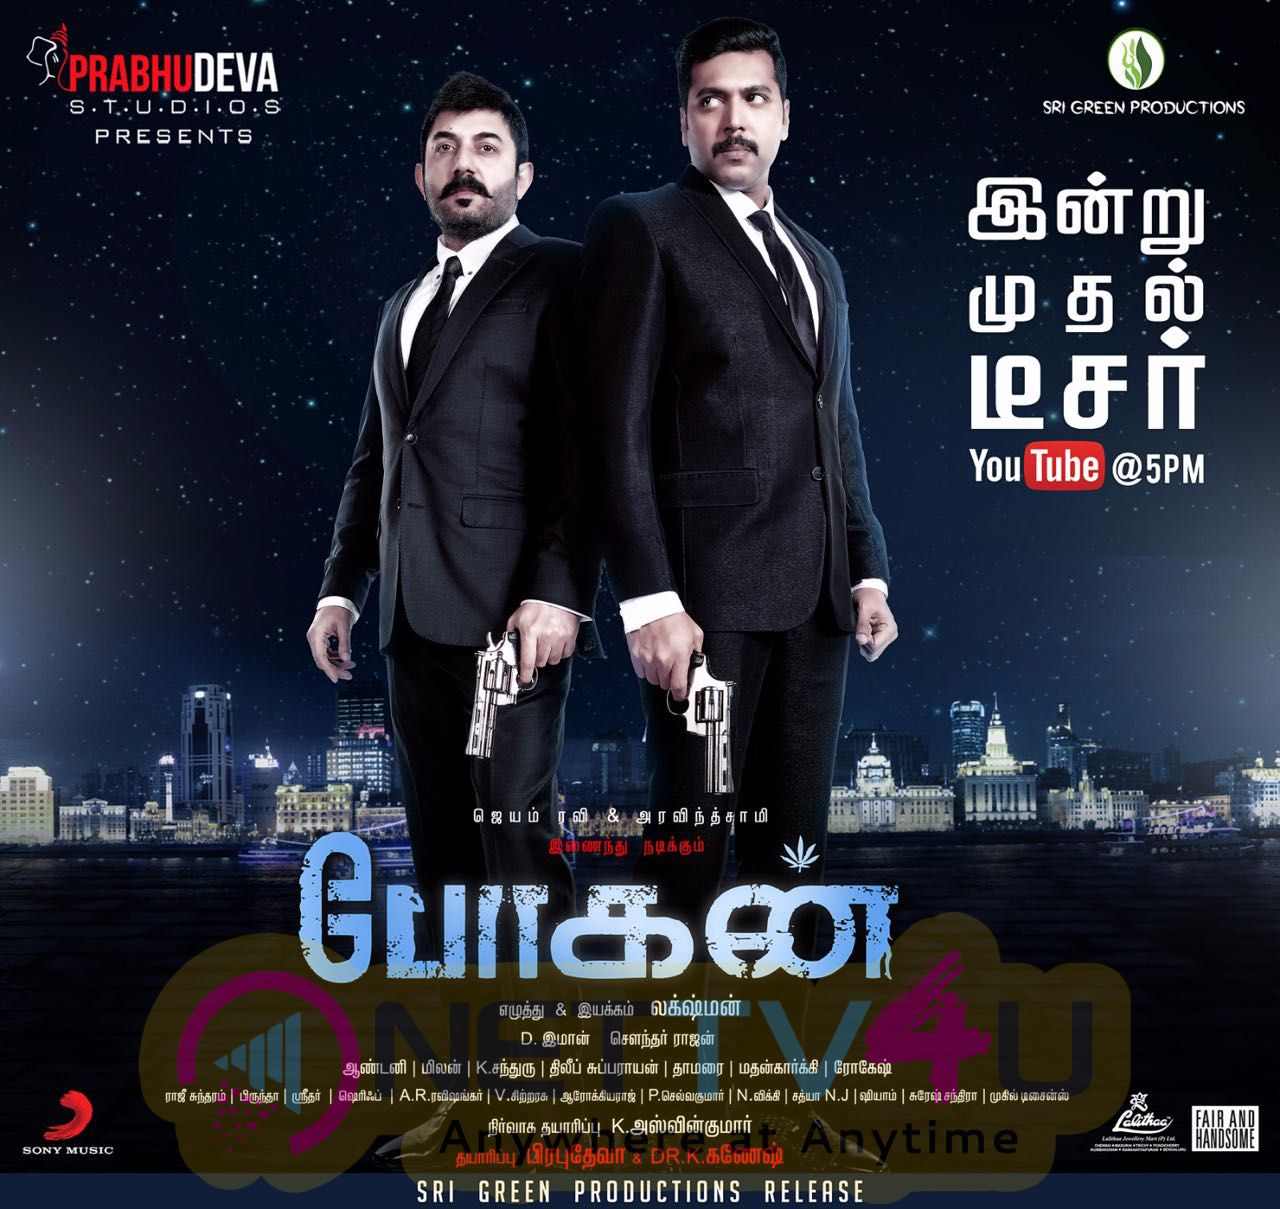 Tamil Movie Bogan Teaser From Today Posters